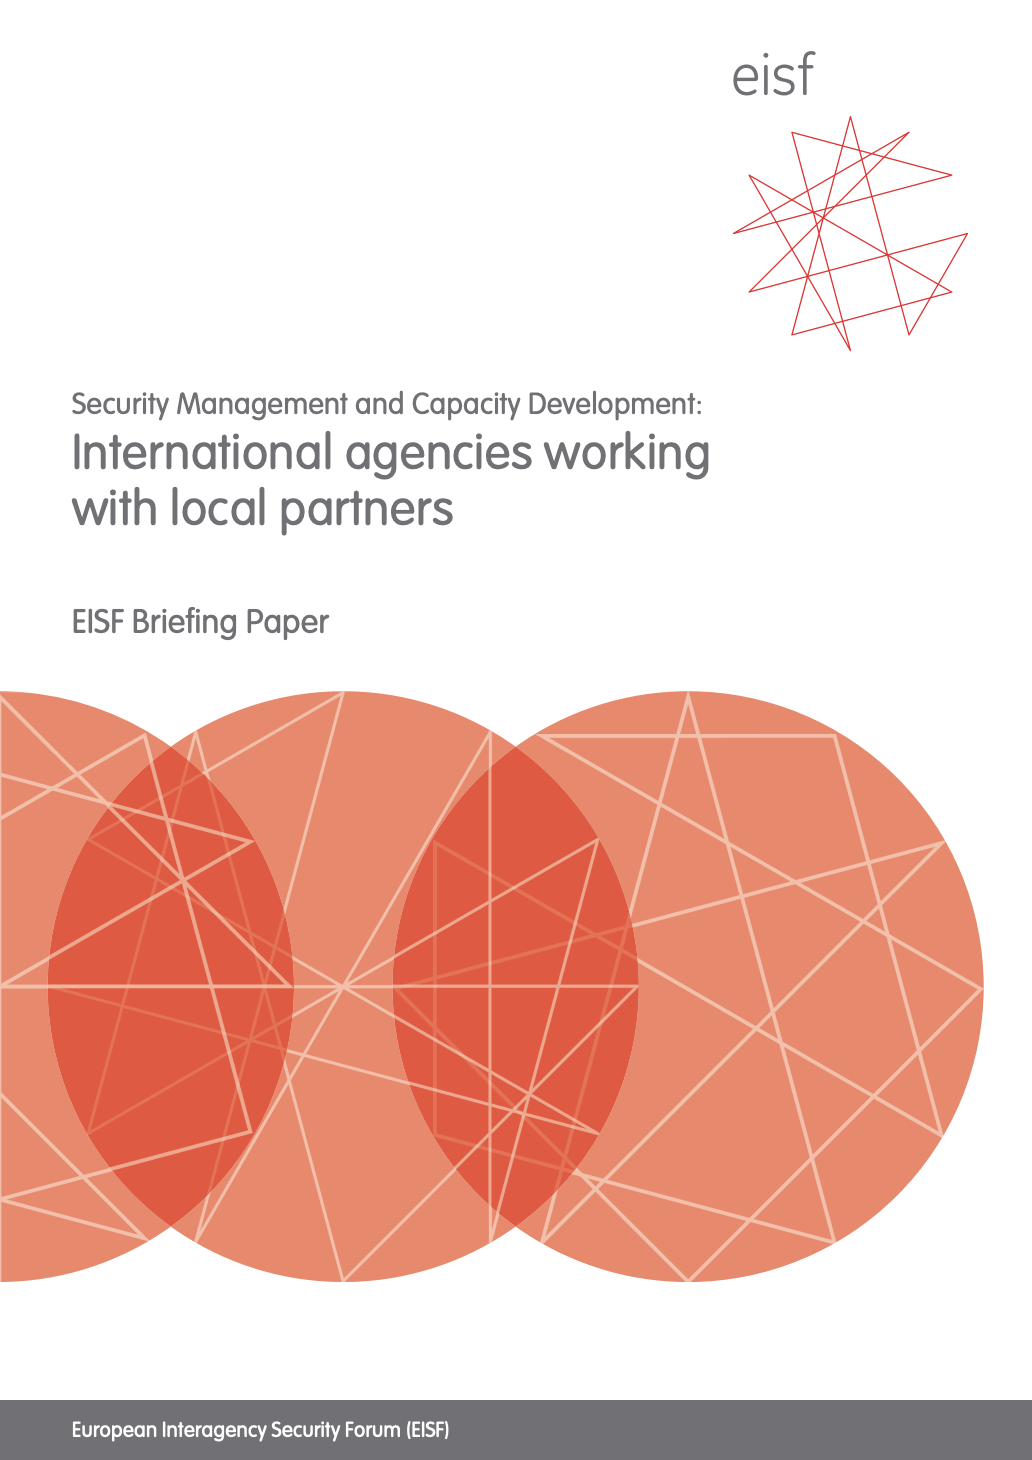 Security Management and Capacity Development: International agencies working with local partners